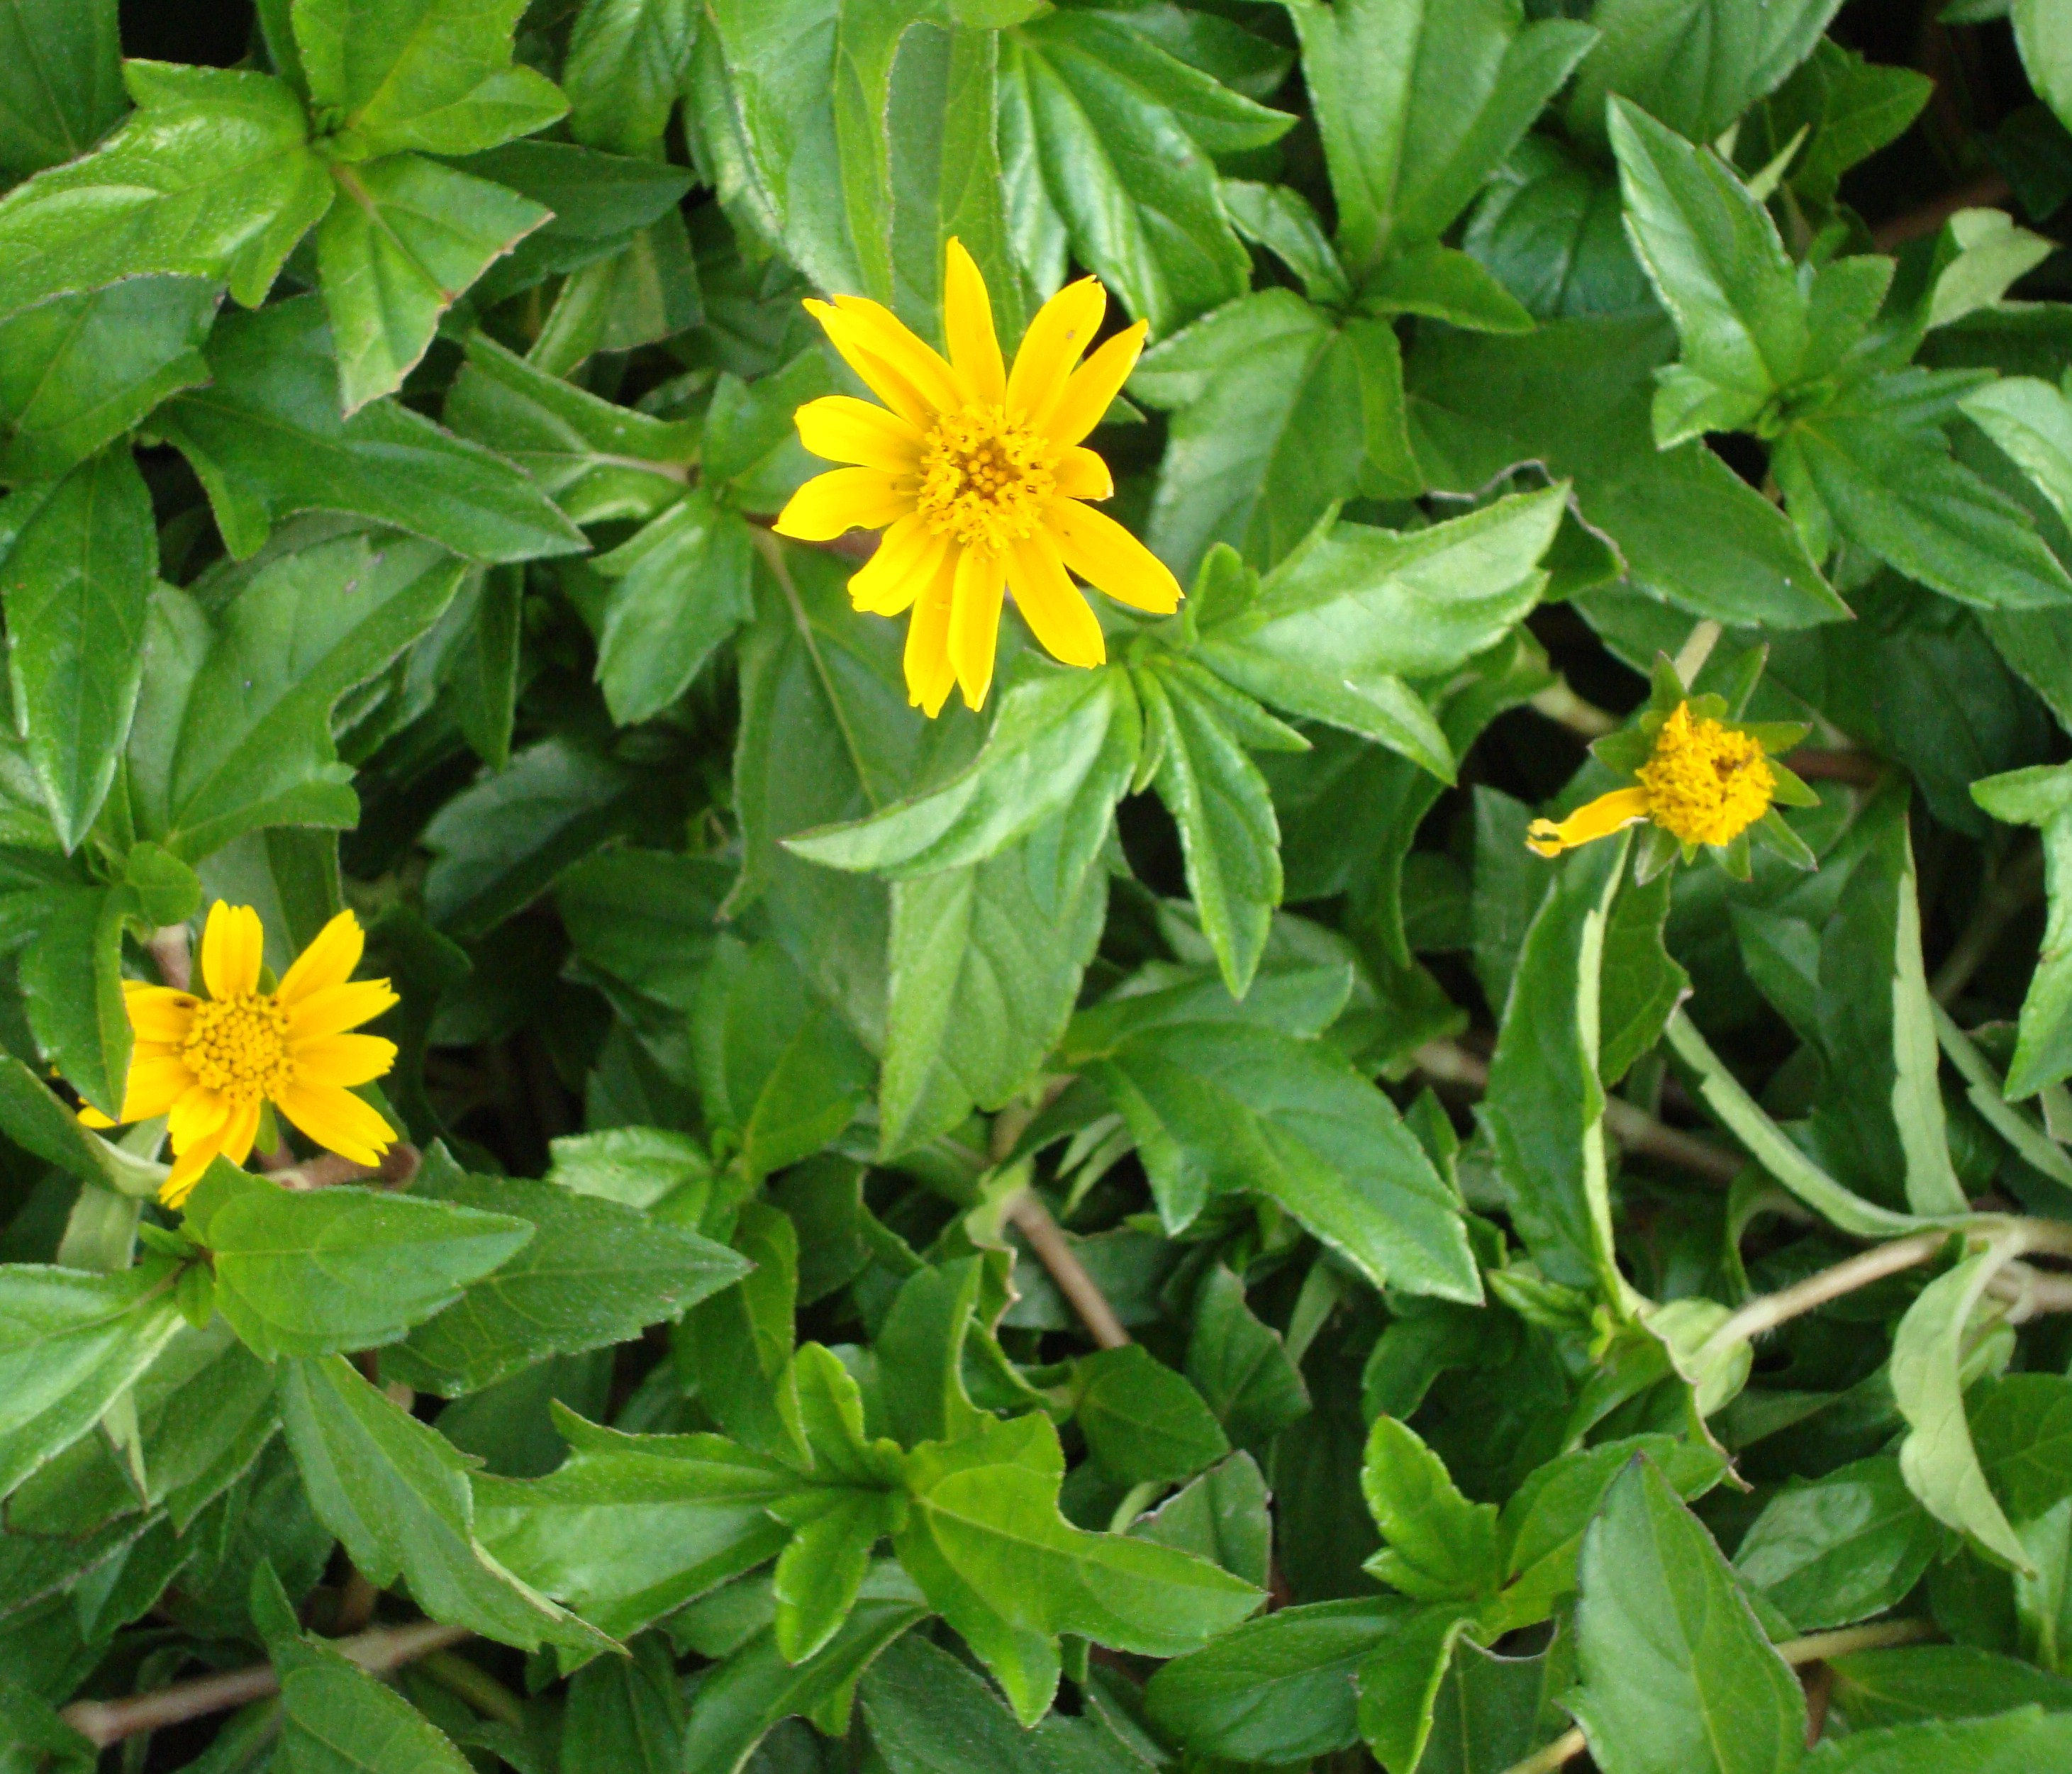 Yellow dot or nettle leaved wedelia naturally beautiful common name yellow dots creeping daisy izmirmasajfo